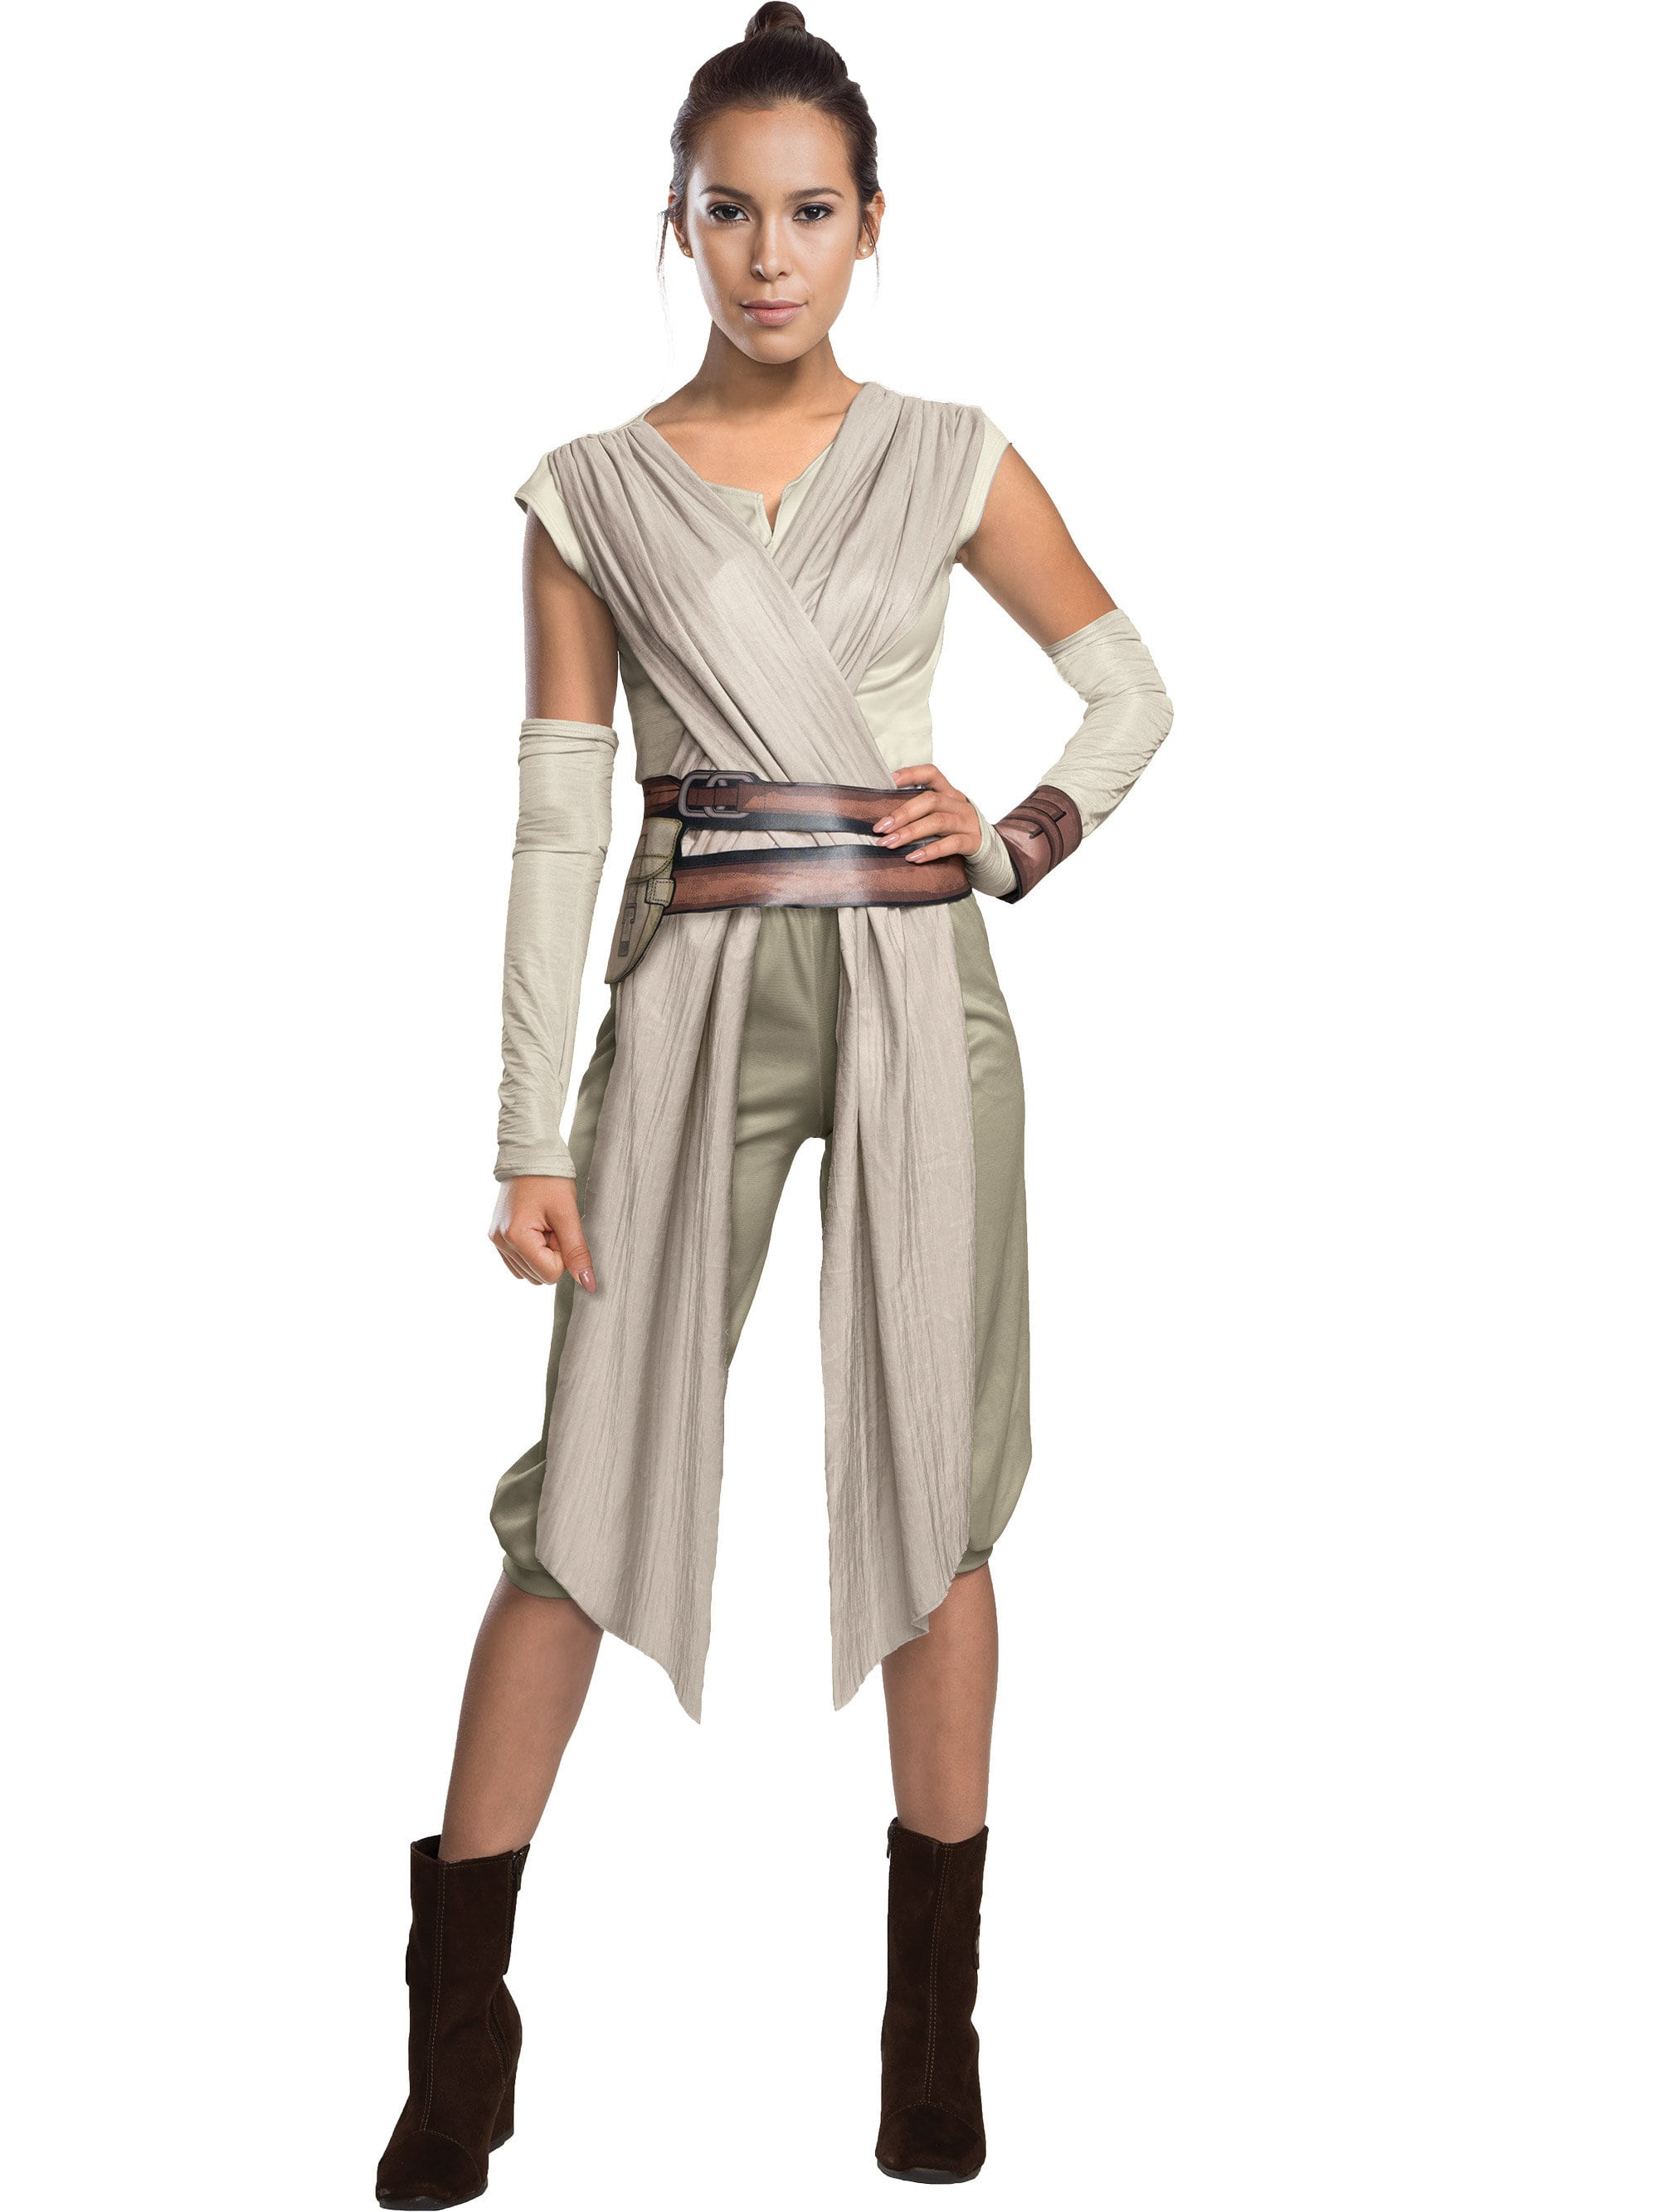 Star Wars The Force Awakens Deluxe Rey Costume Womens Costume Womens Costumes For 2019 Wholesale Halloween Costumes